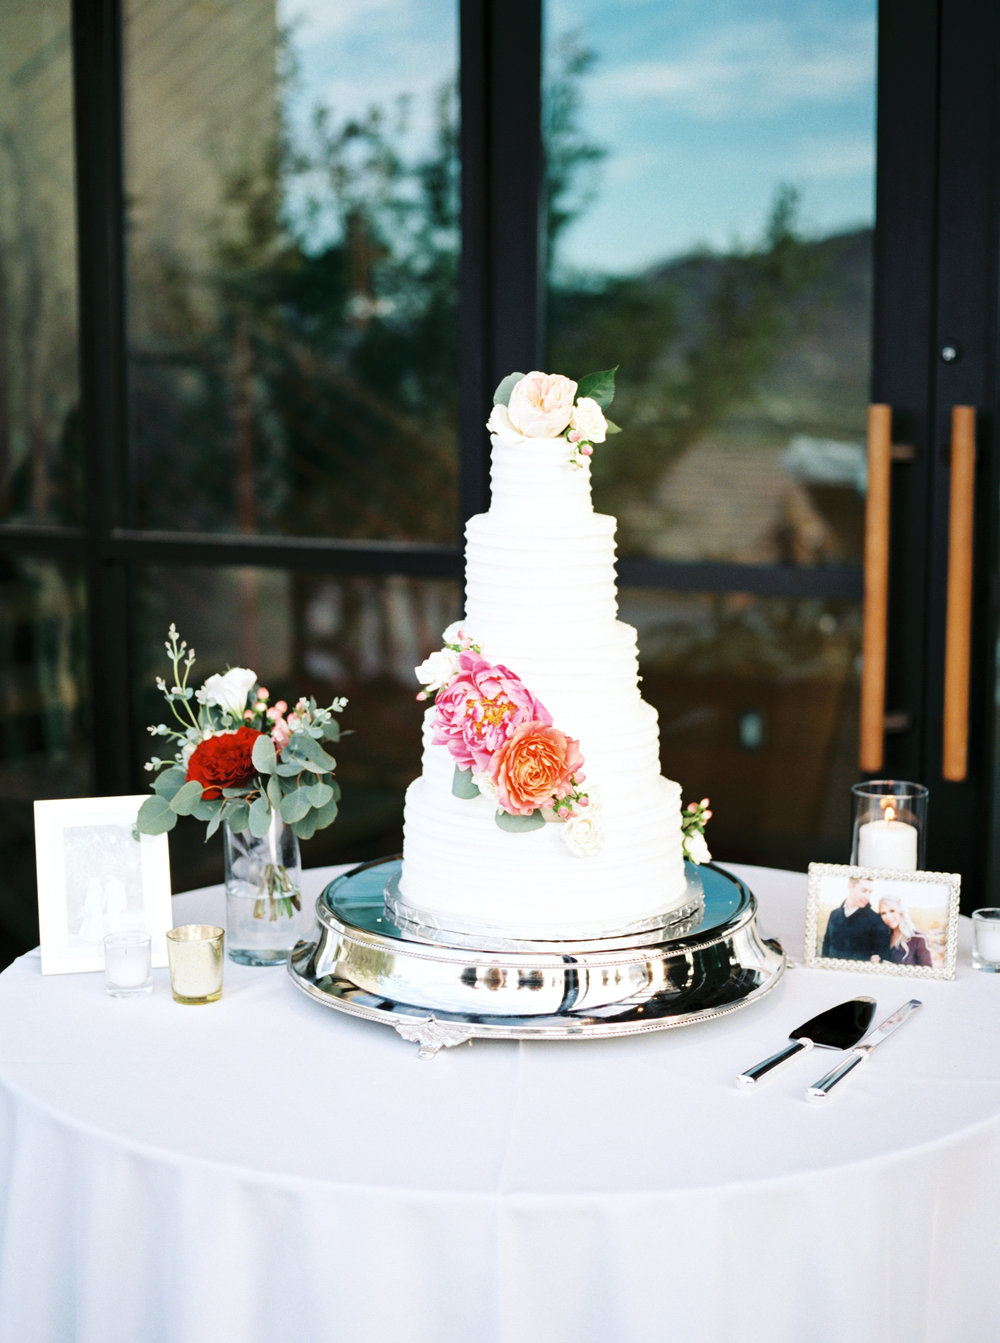 wedding cake, tiered wedding cake, classic wedding cake, white wedding cake, cake flowers, wedding cake details